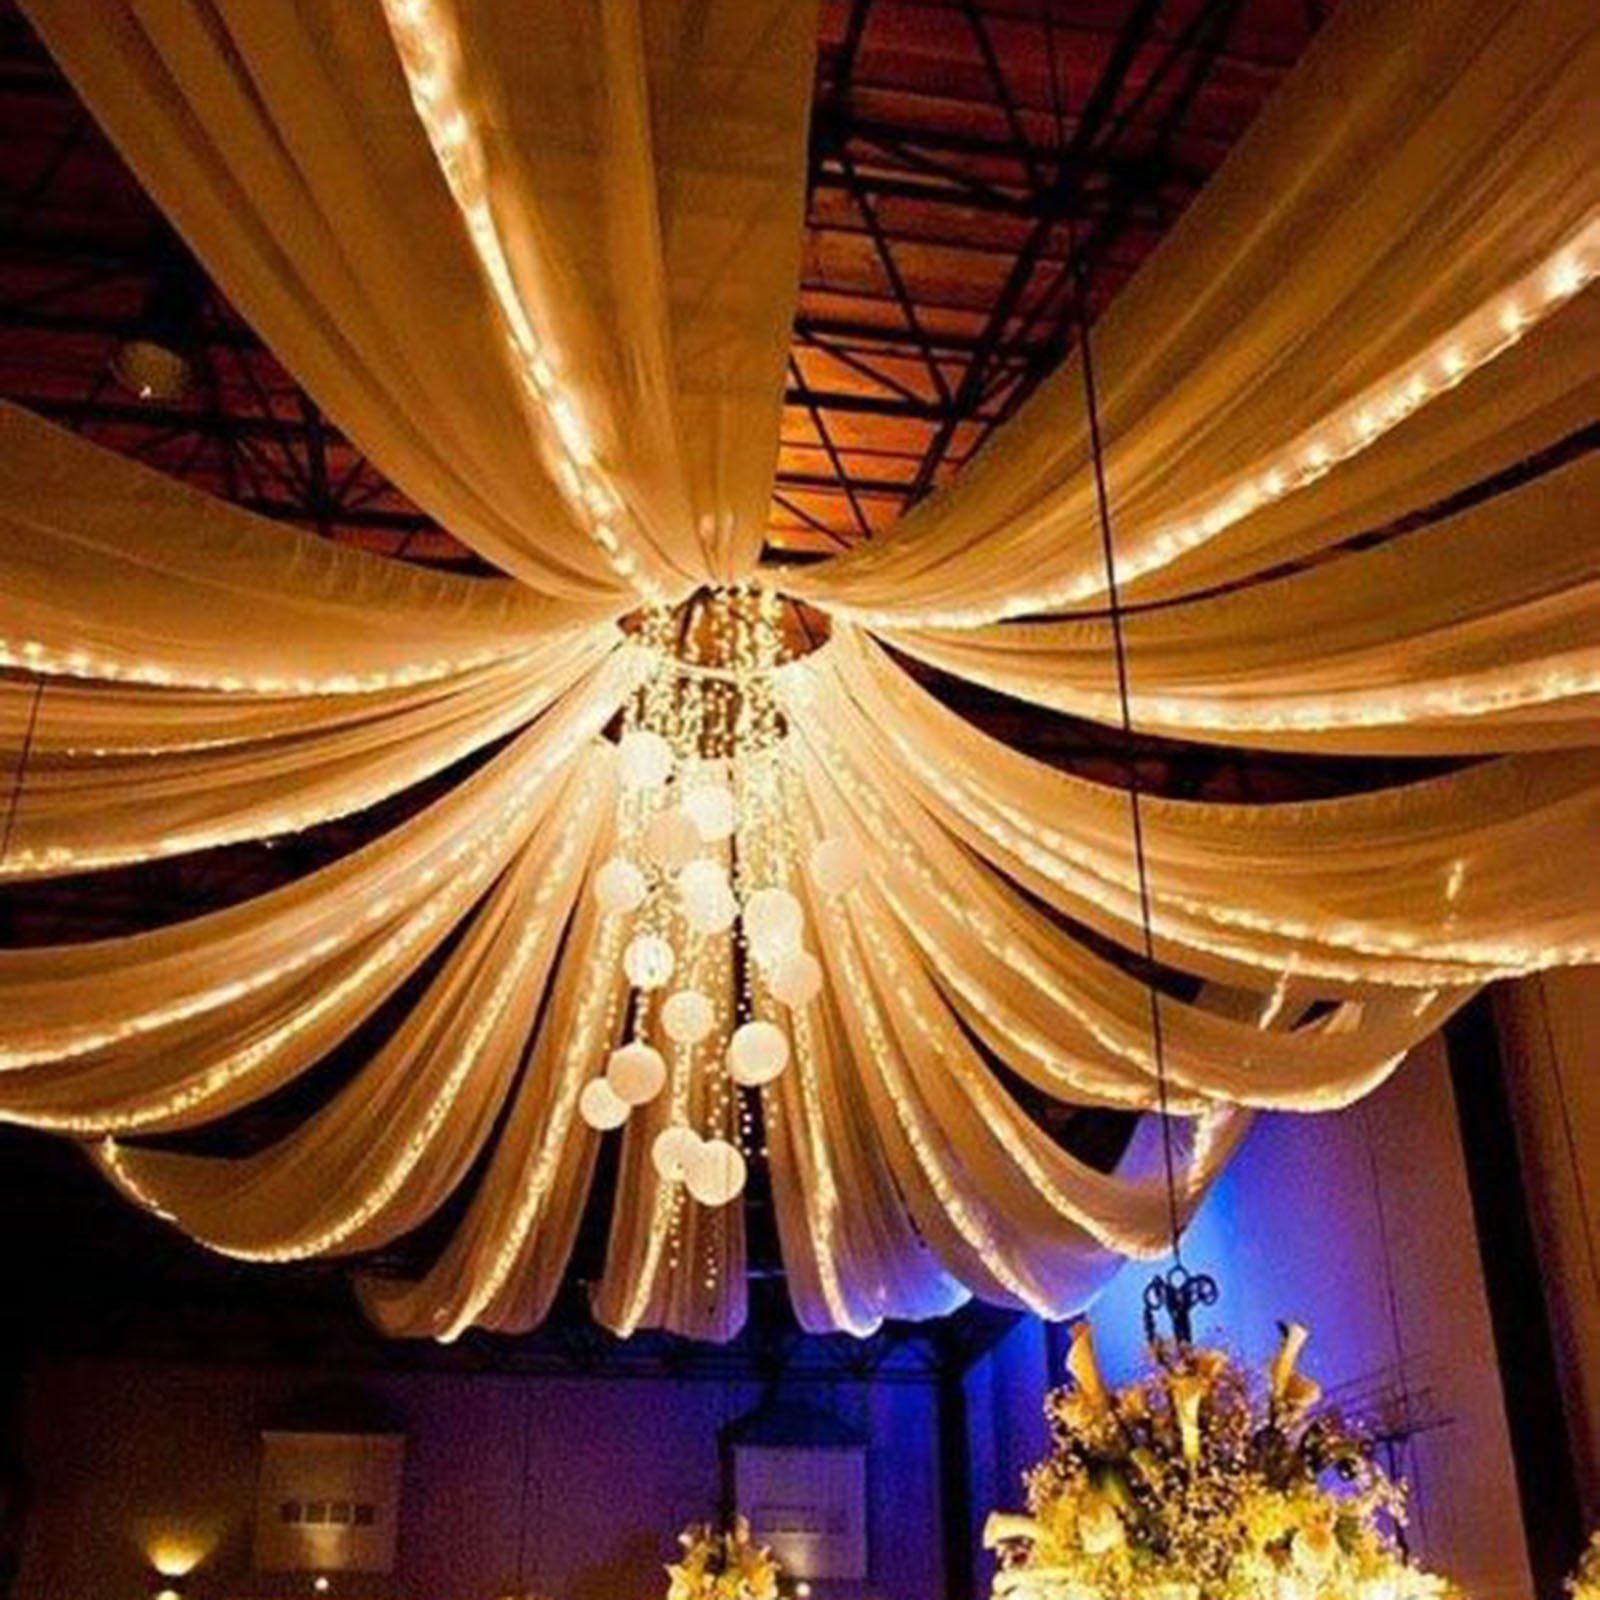 Efavormart Panel Hoop Ceiling Draping Hardware Kit For Wedding Party Banquet Event Free Installation Tool Kit Walmart Com Walmart Com